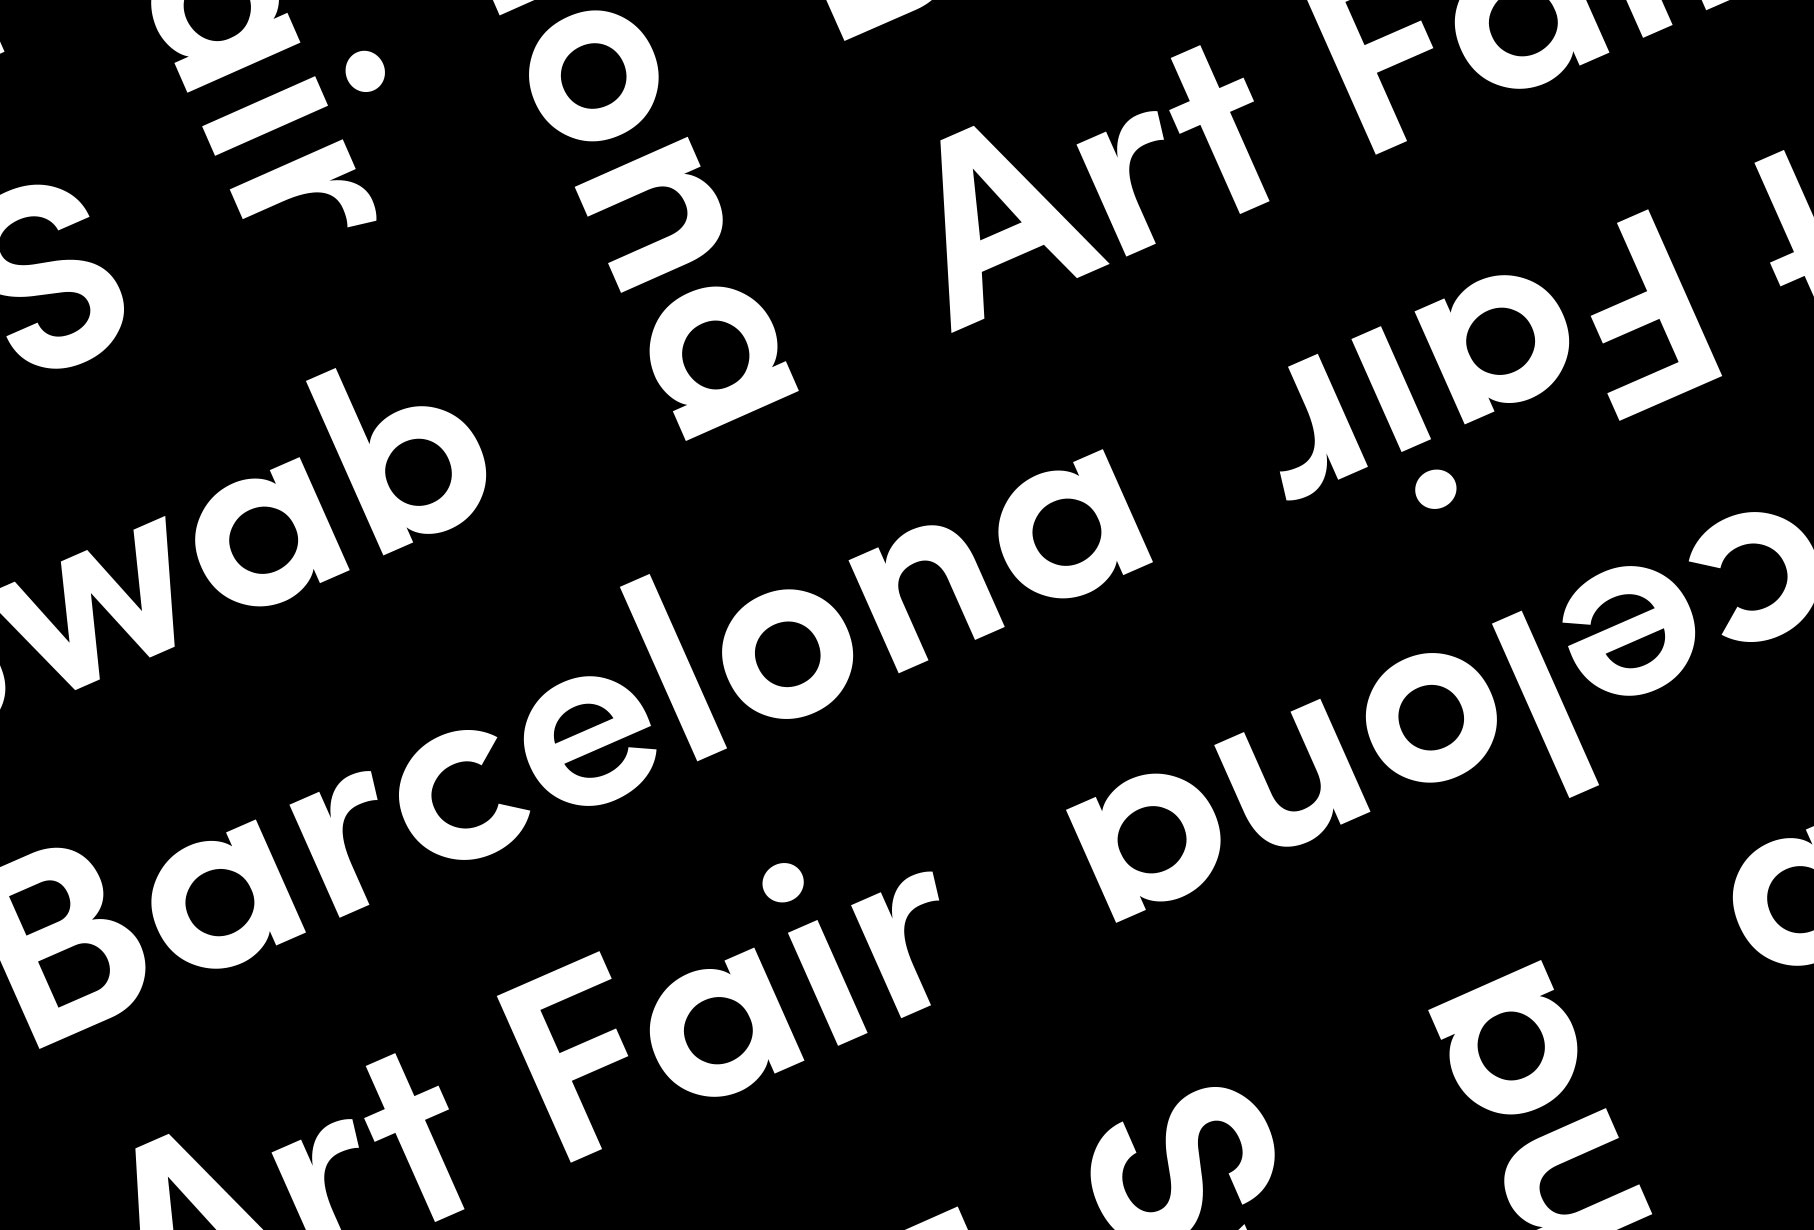 swab art fair barcelona with 3punts galeria